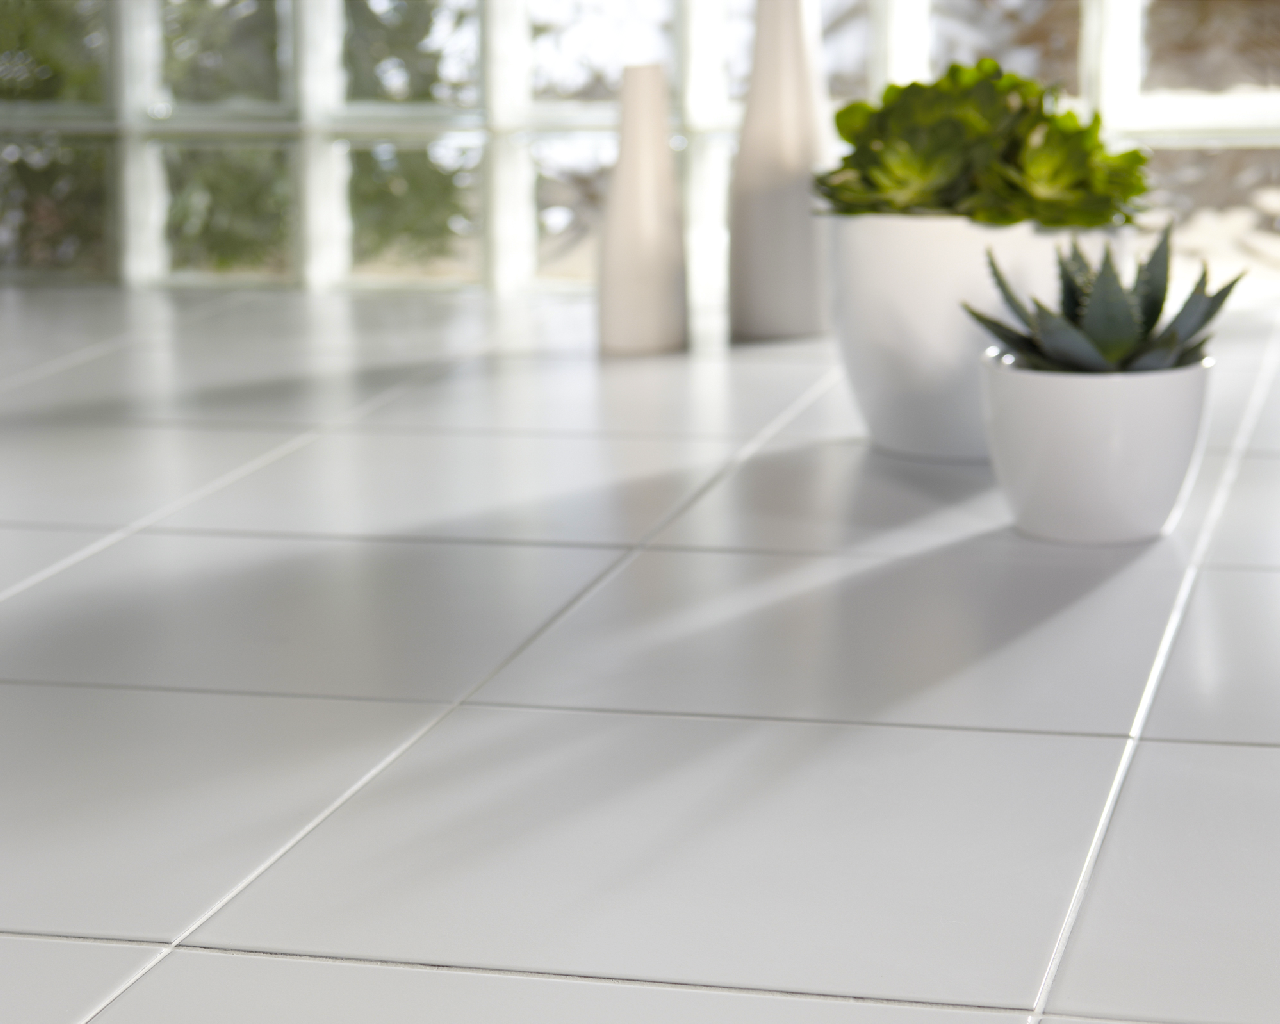 Difference Between Glazed And Unglazed Tiles http://bit.ly/11TCXeO ...